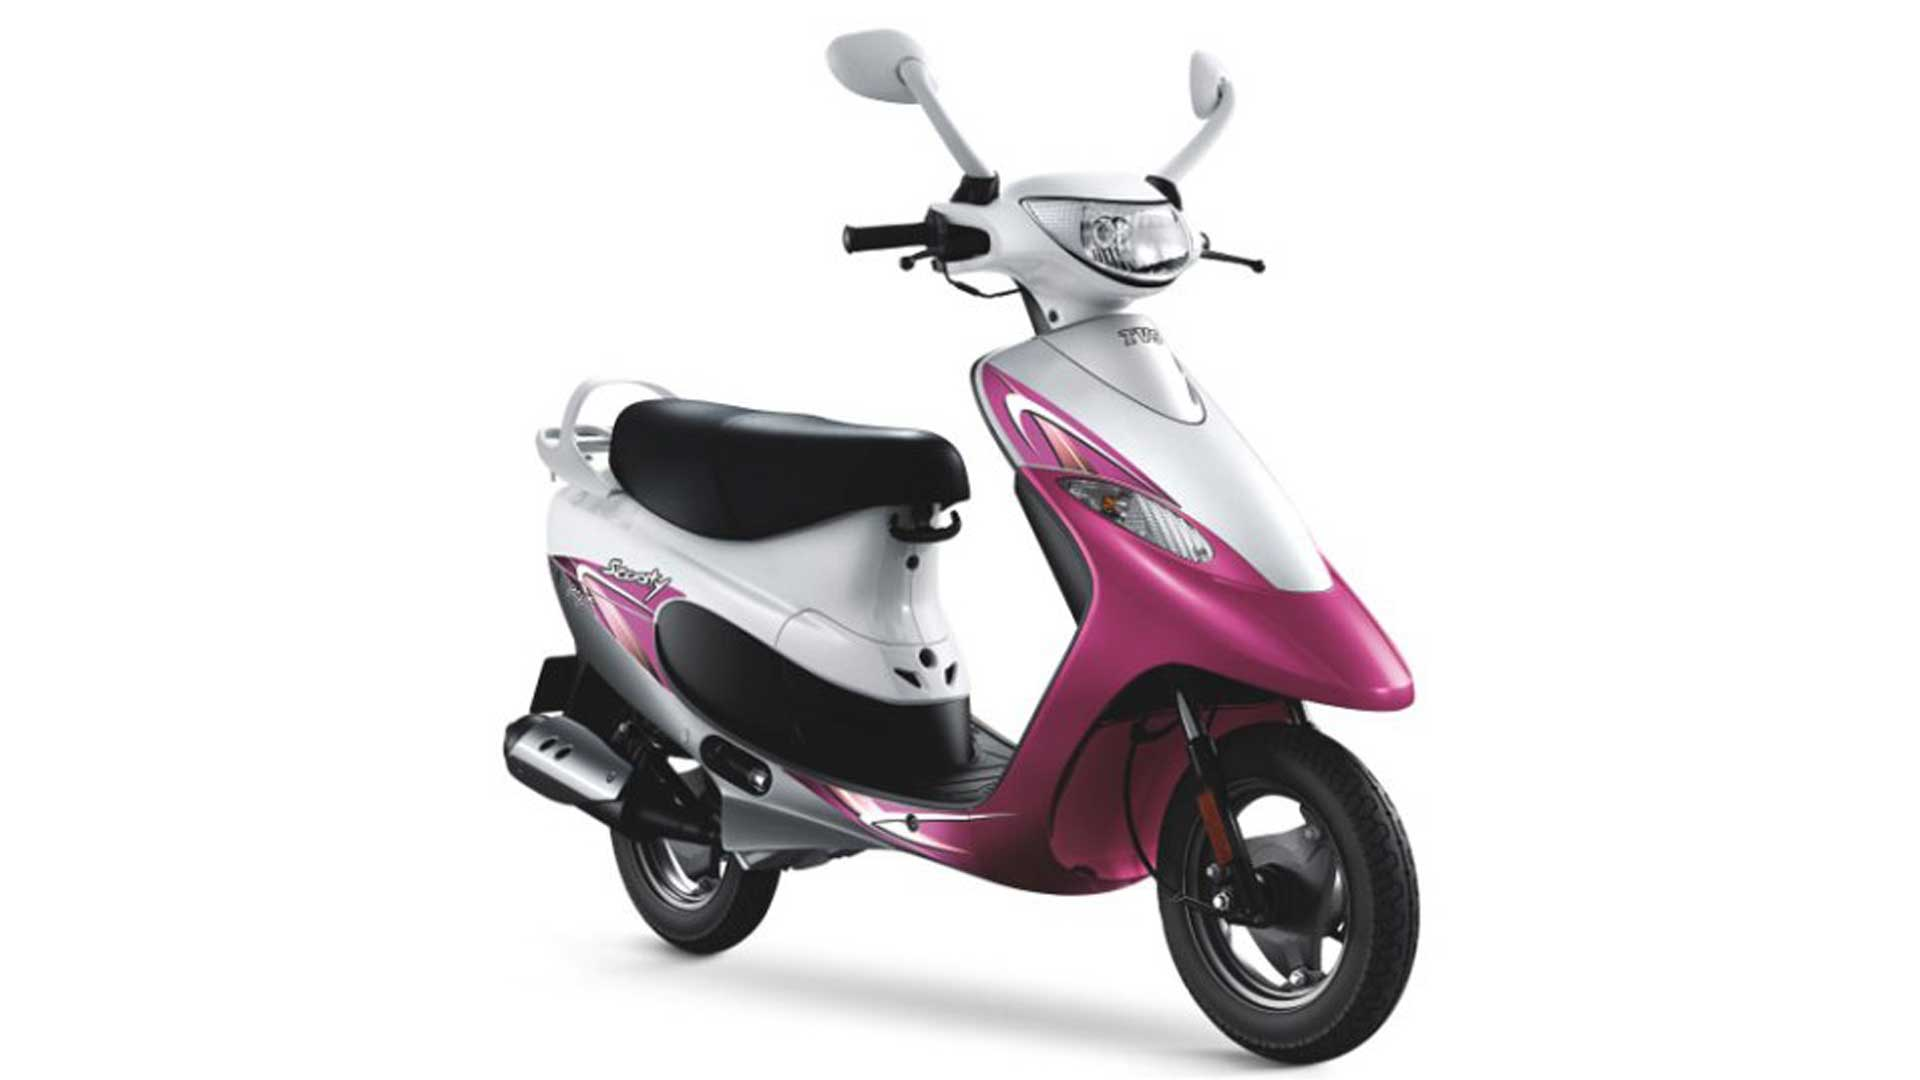 Tvs Scooty Pep Plus 2013 Std Price Mileage Reviews